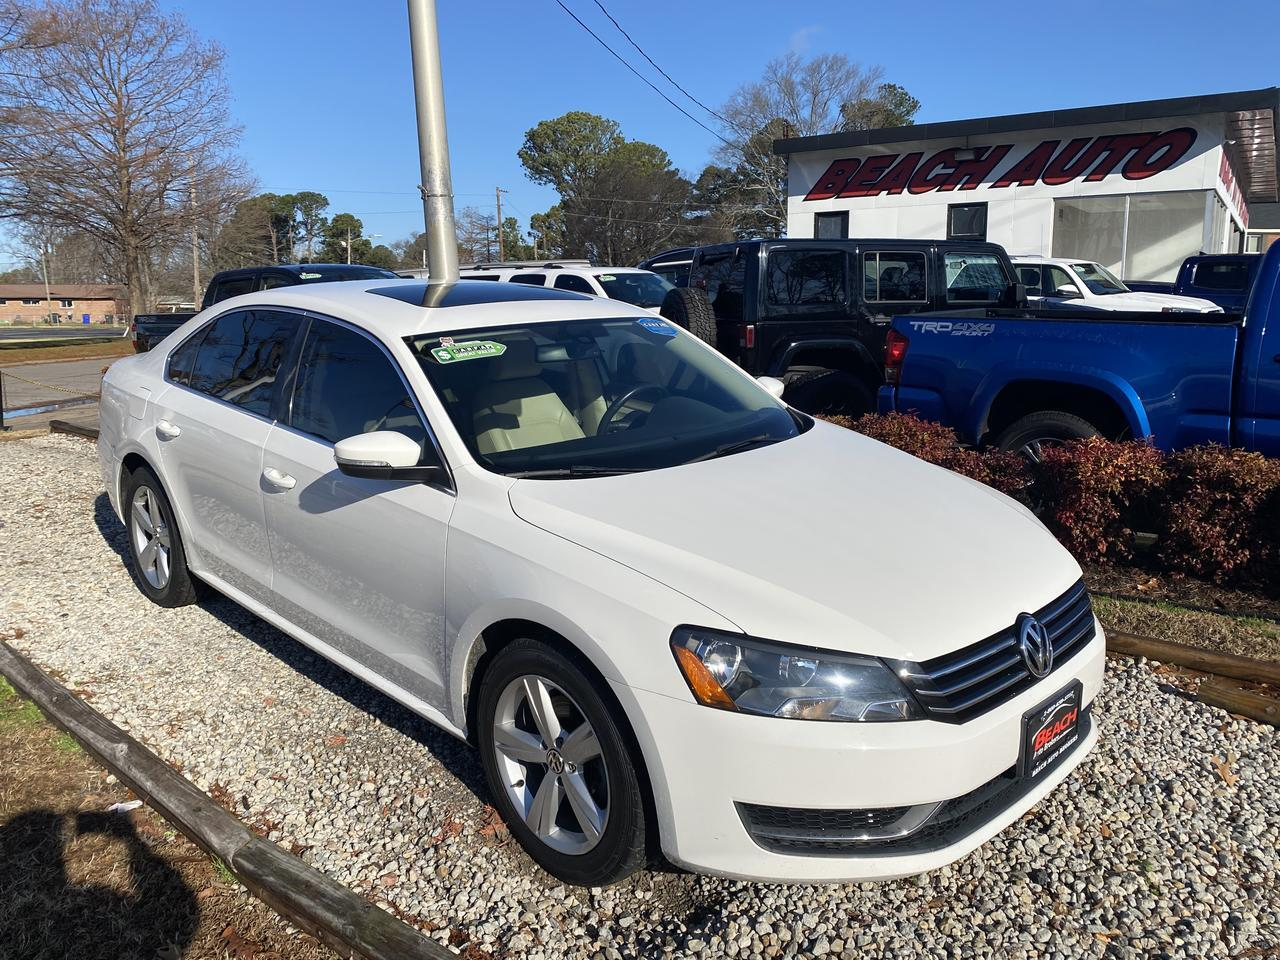 2013 VOLKSWAGEN PASSAT SE, WARRANTY, LEATHER, SUNROOF, BLUETOOTH, AUX/USB PORT, BACKUP CAM, CLEAN CARFAX! Norfolk VA